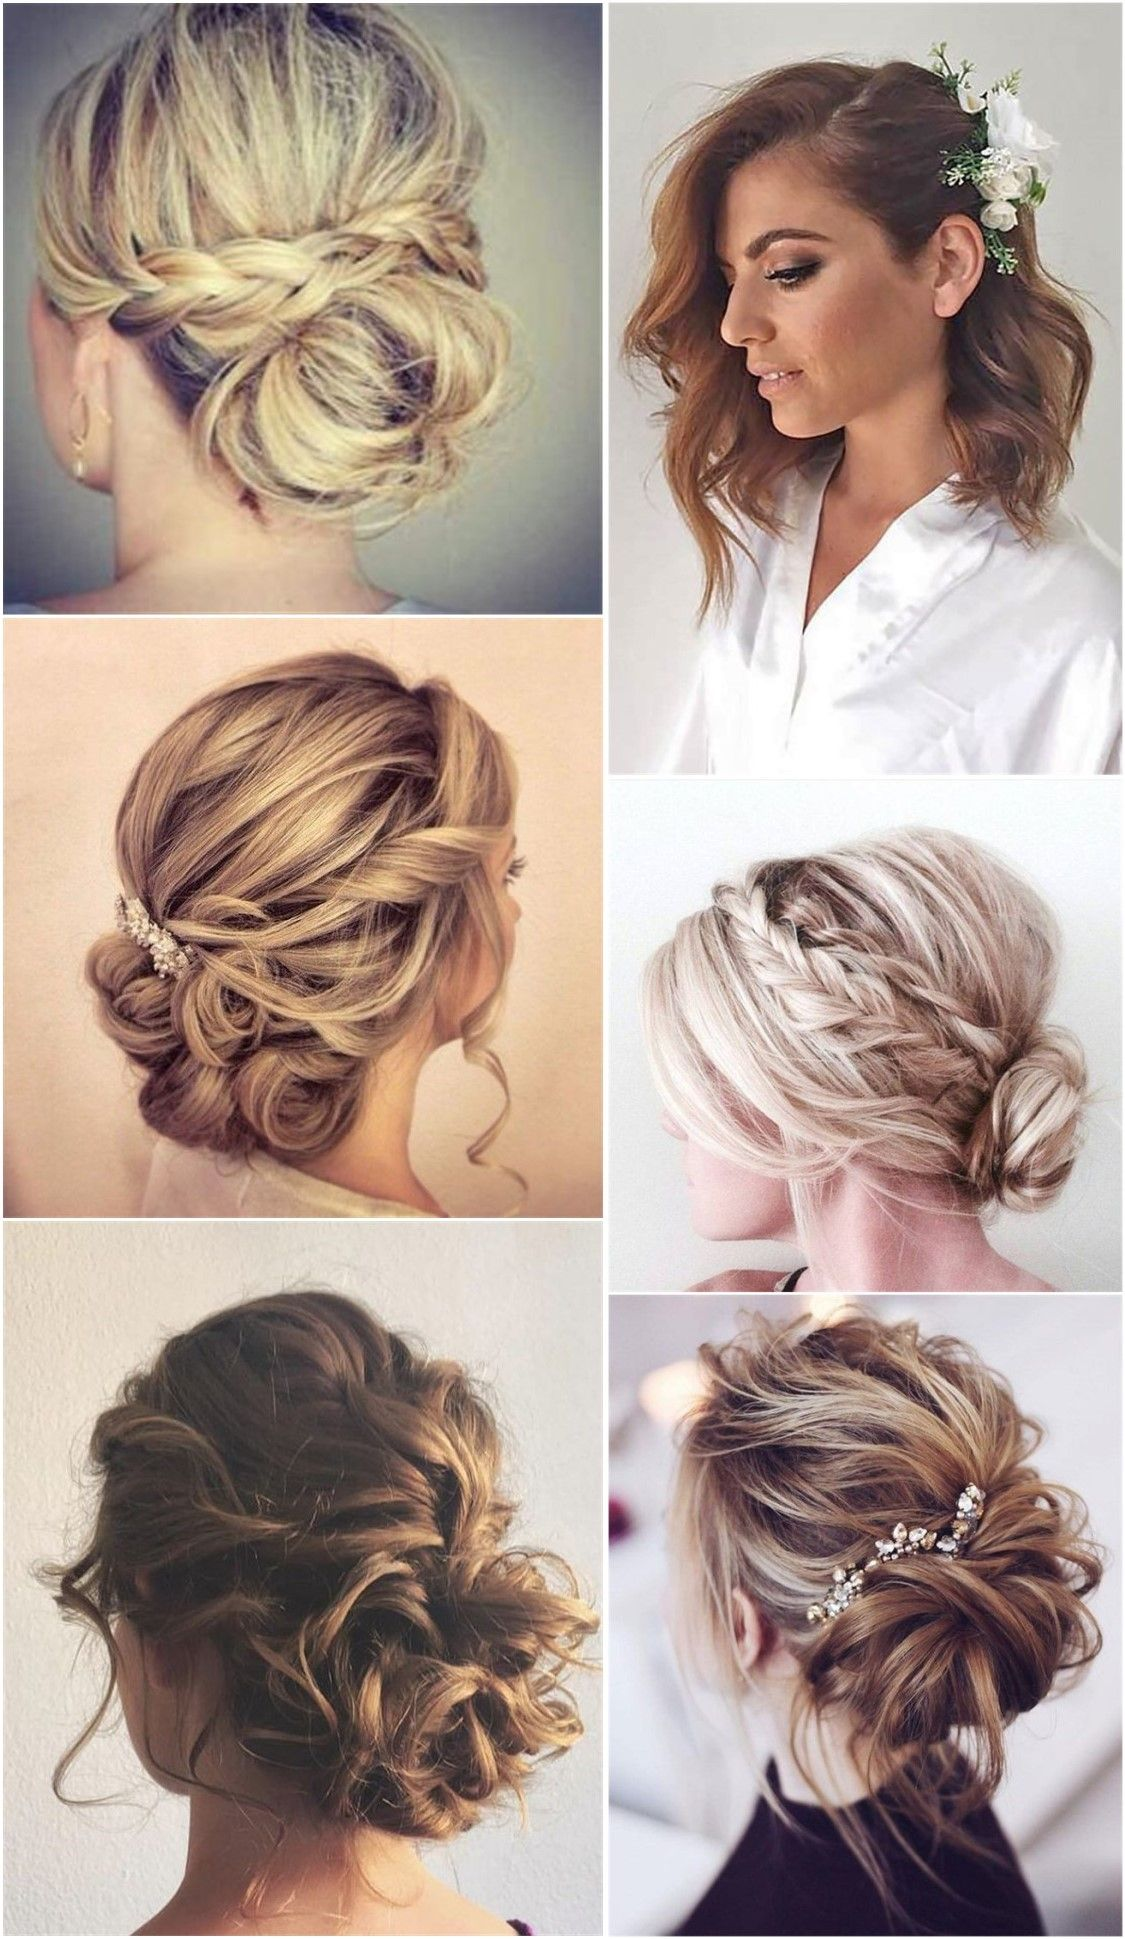 24 Lovely Medium Length Hairstyles For 2020 Weddings Weddinginclude Medium Length Hair Styles Medium Hair Styles Fall Wedding Hairstyles